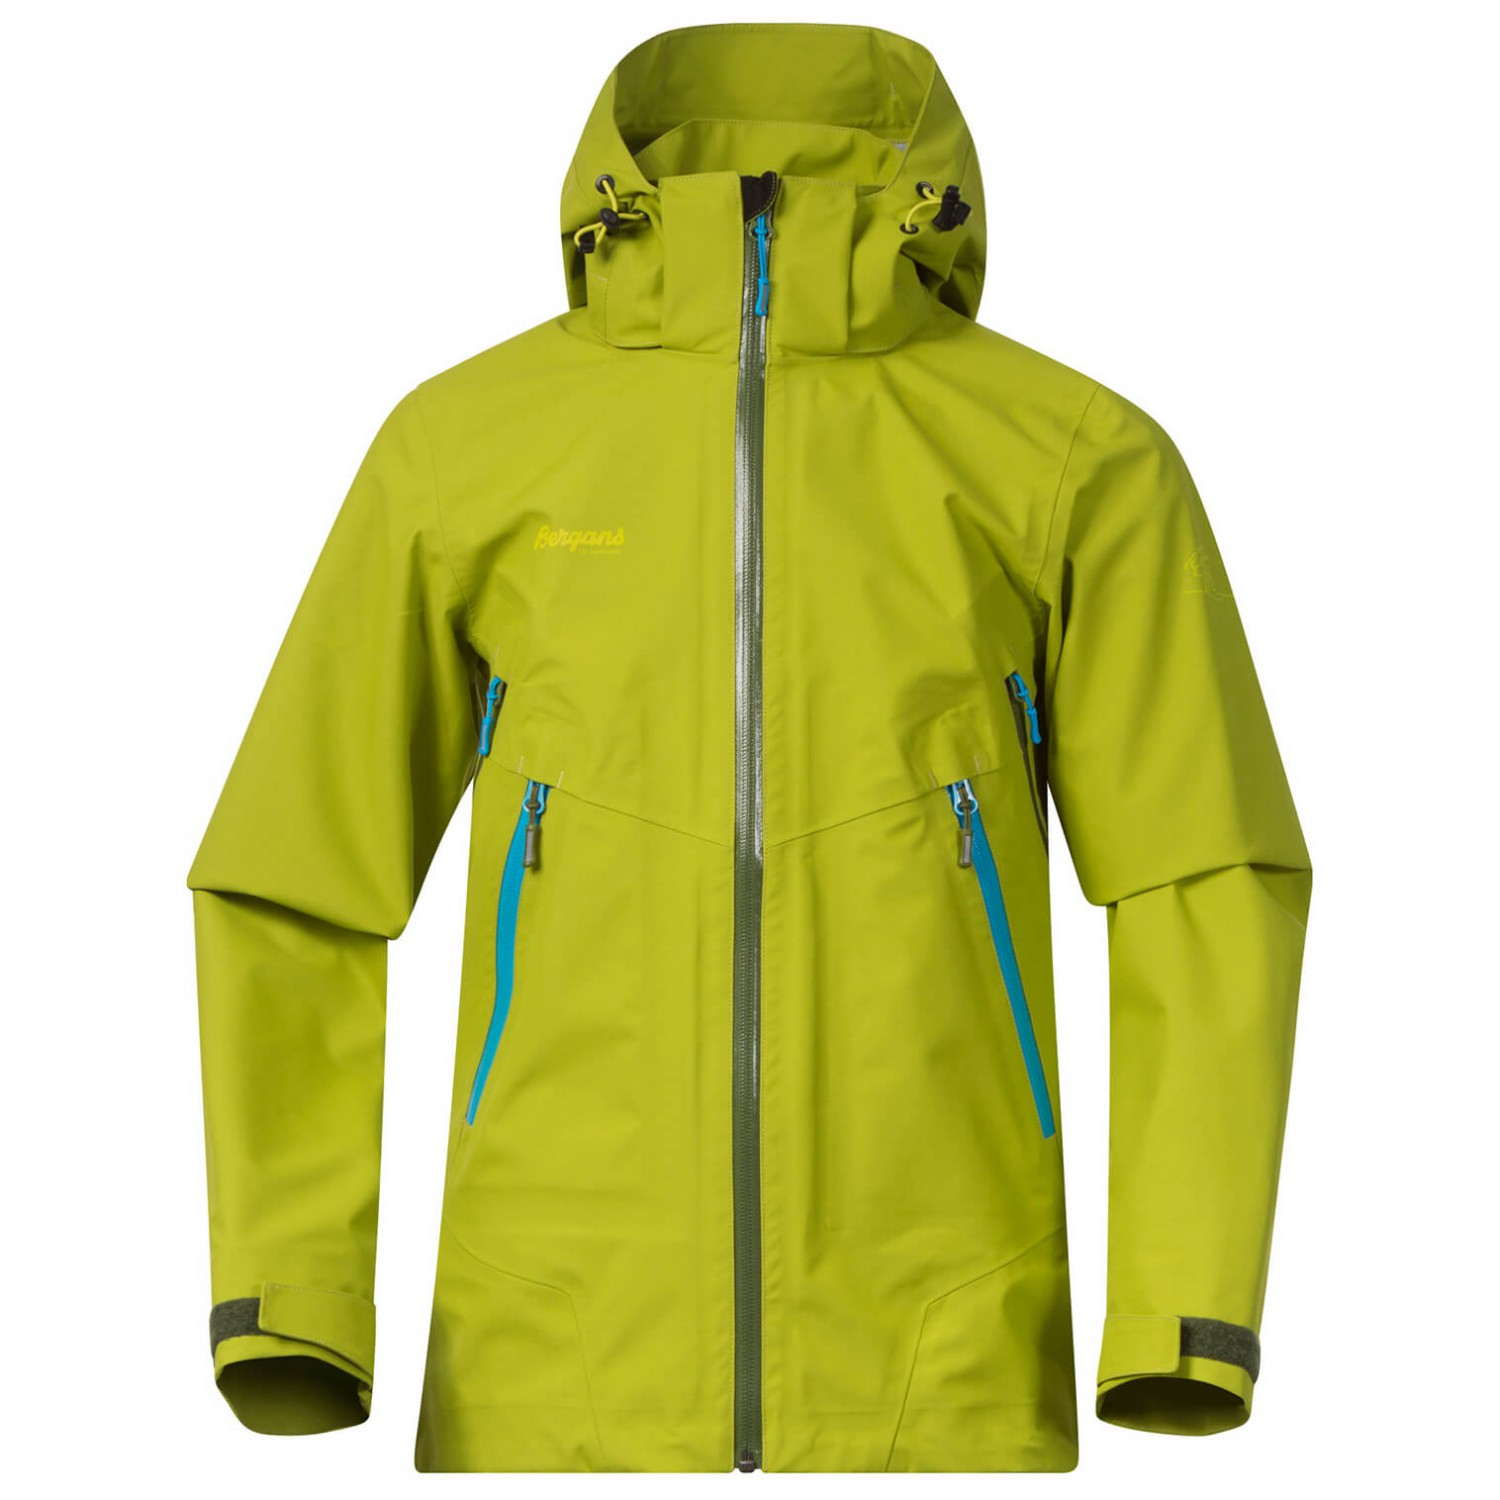 4edc0404 Bergans Ervik Youth Jacket - Waterproof Jacket Kids | Buy online |  Alpinetrek.co.uk